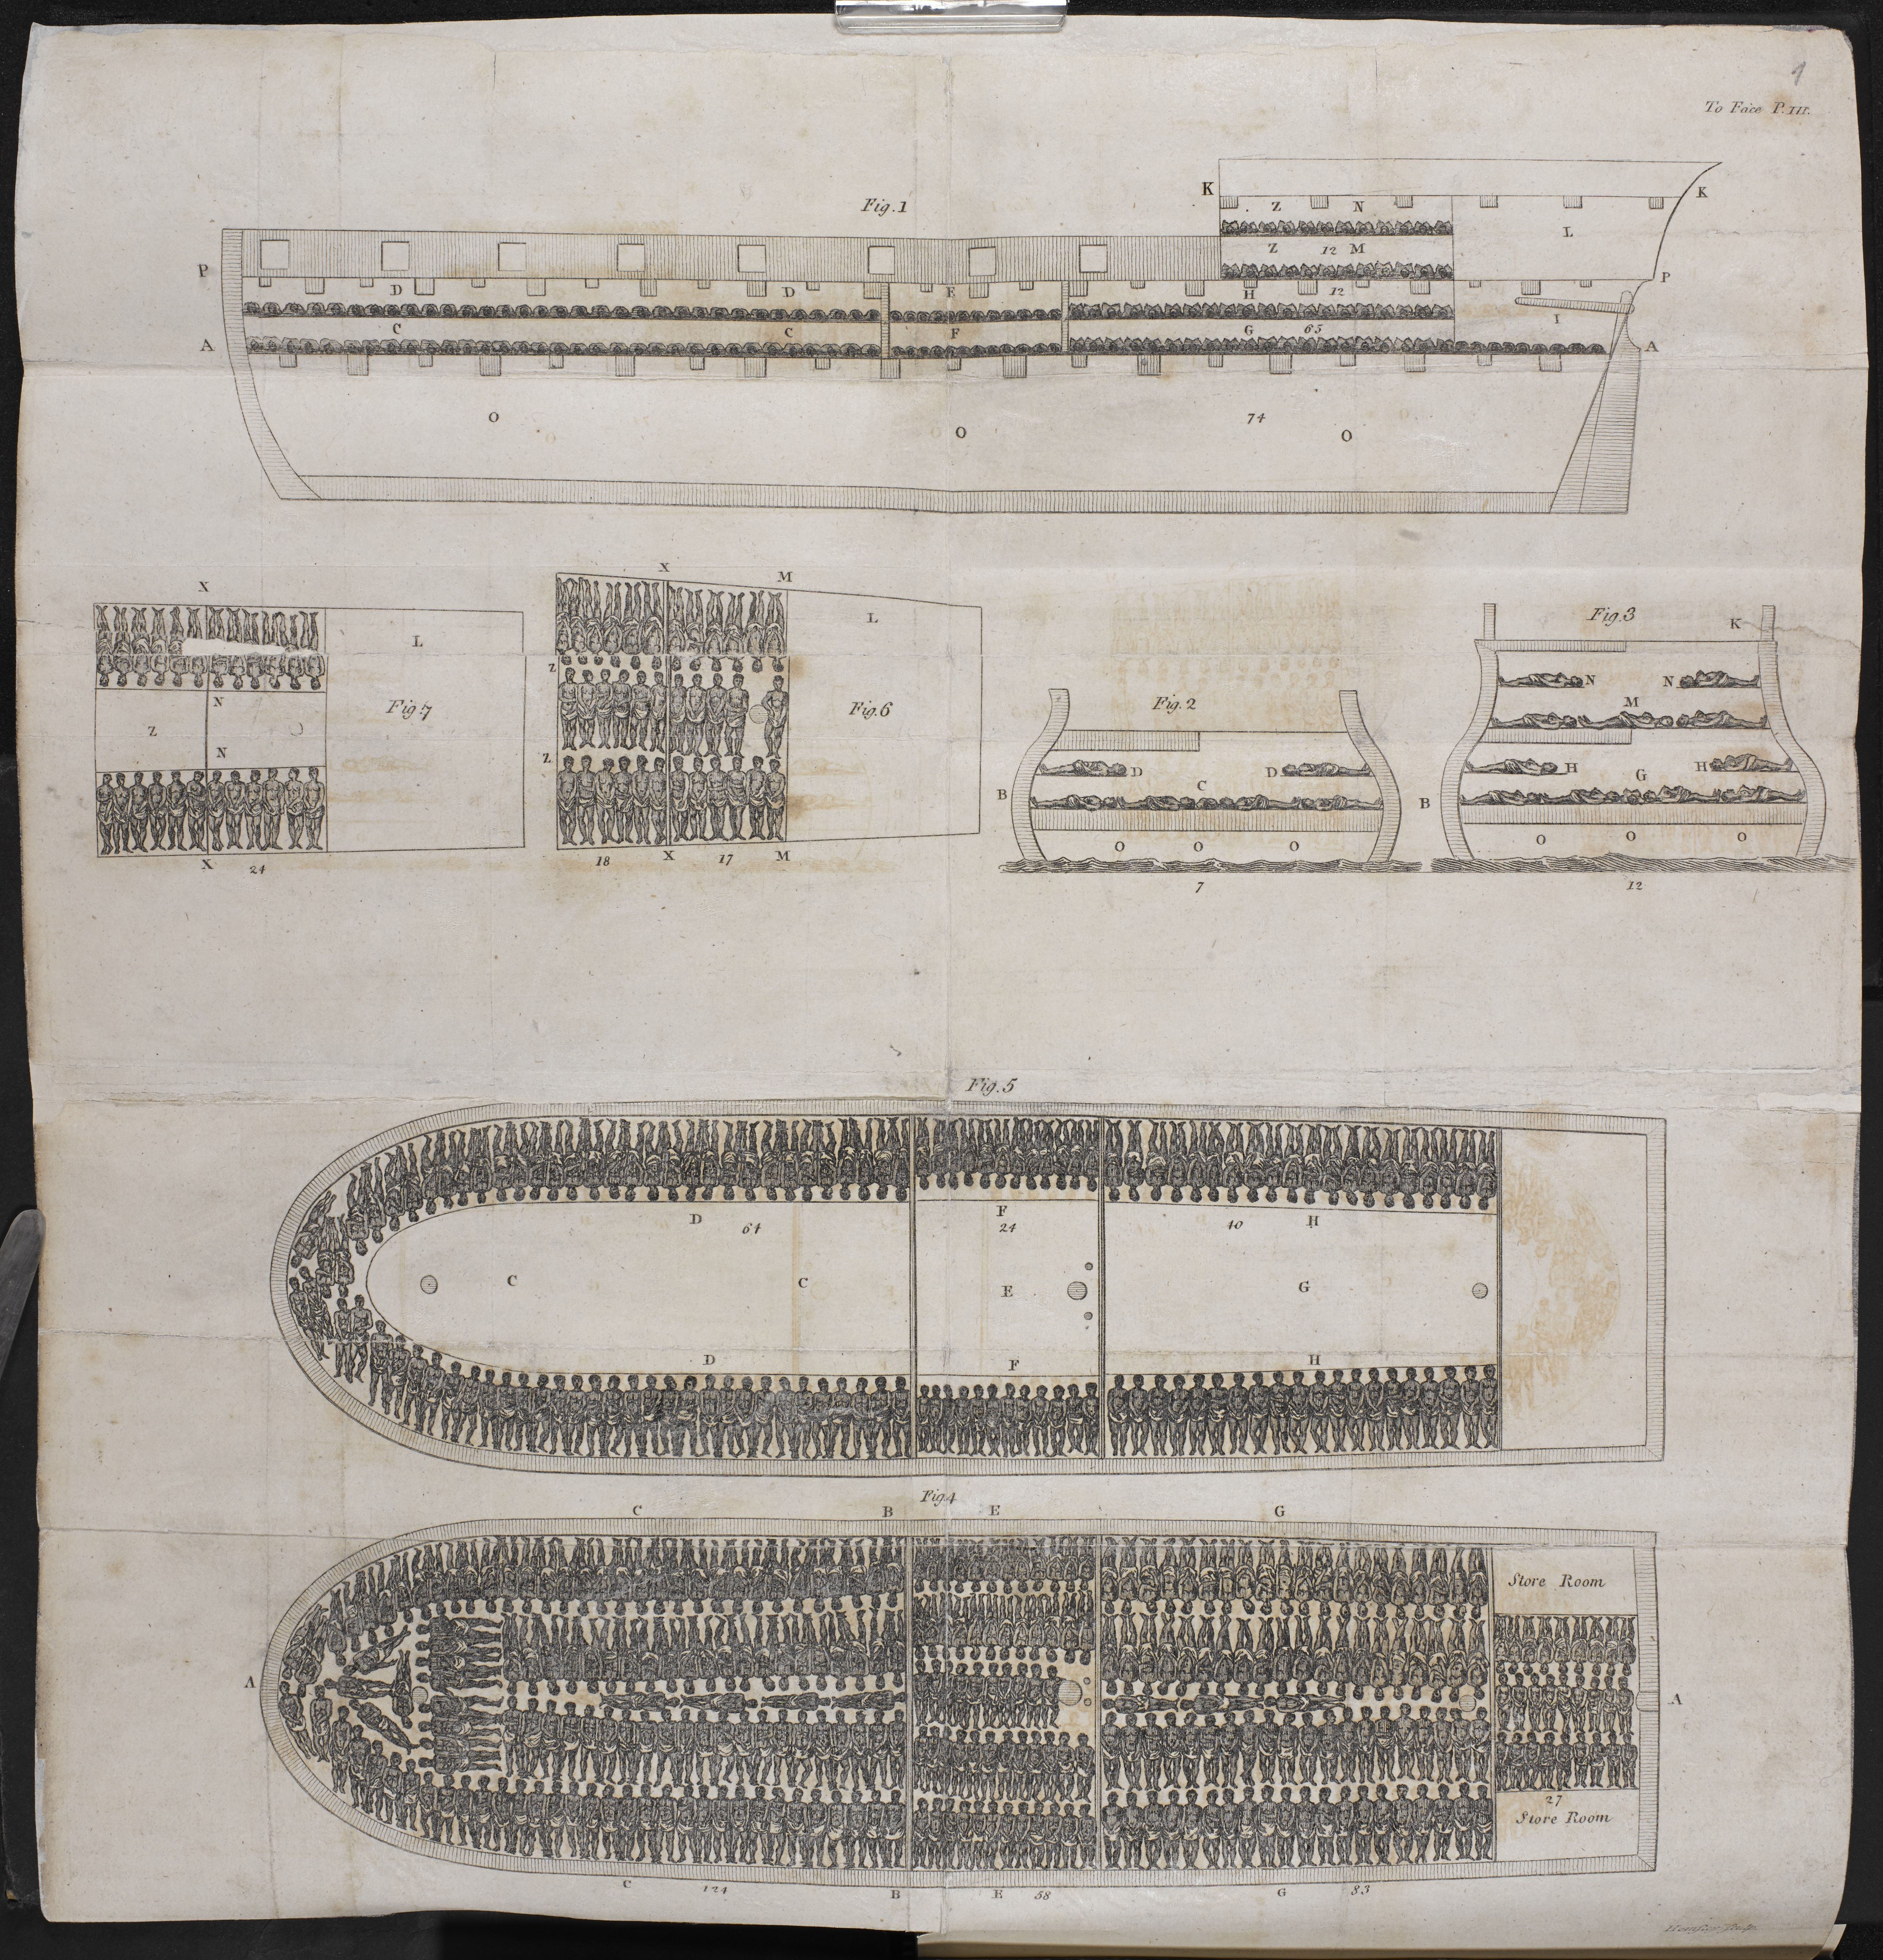 This is one of the best-known images produced by abolitionists created to show the horrors of the transatlantic crossing - also known as the Middle Passage - between Britain, West Africa and the Caribbean. The drawing shows how captives were crammed into the hold of a slave ship - this image shows the real ship 'Brookes' and appeared in the book of Thomas Clarkson.